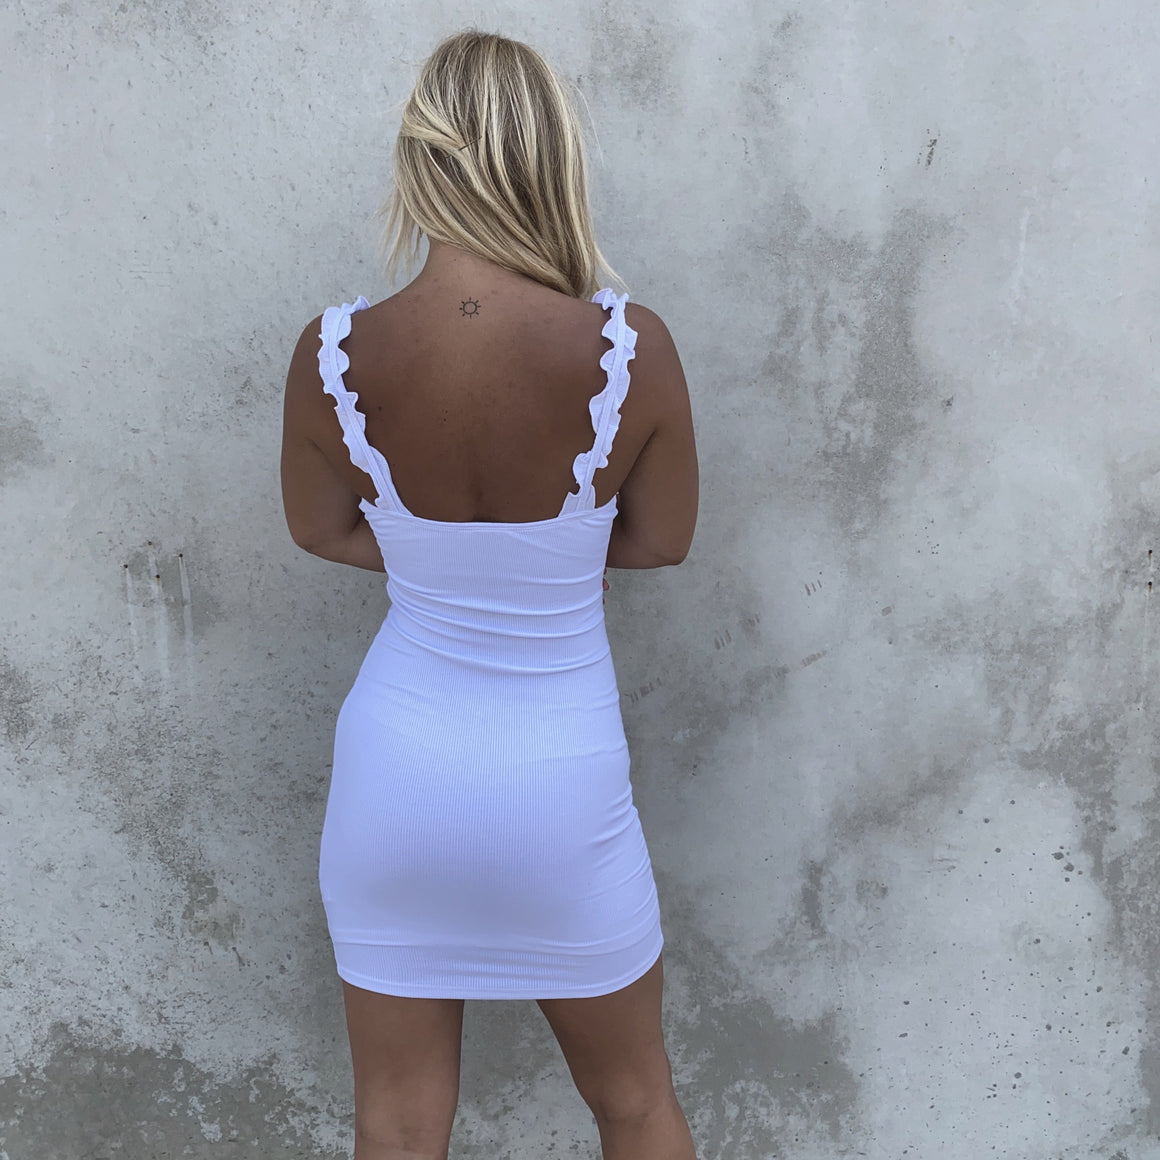 Always Joyful Ribbed & Ruffle Bodycon Dress in White - Dainty Hooligan